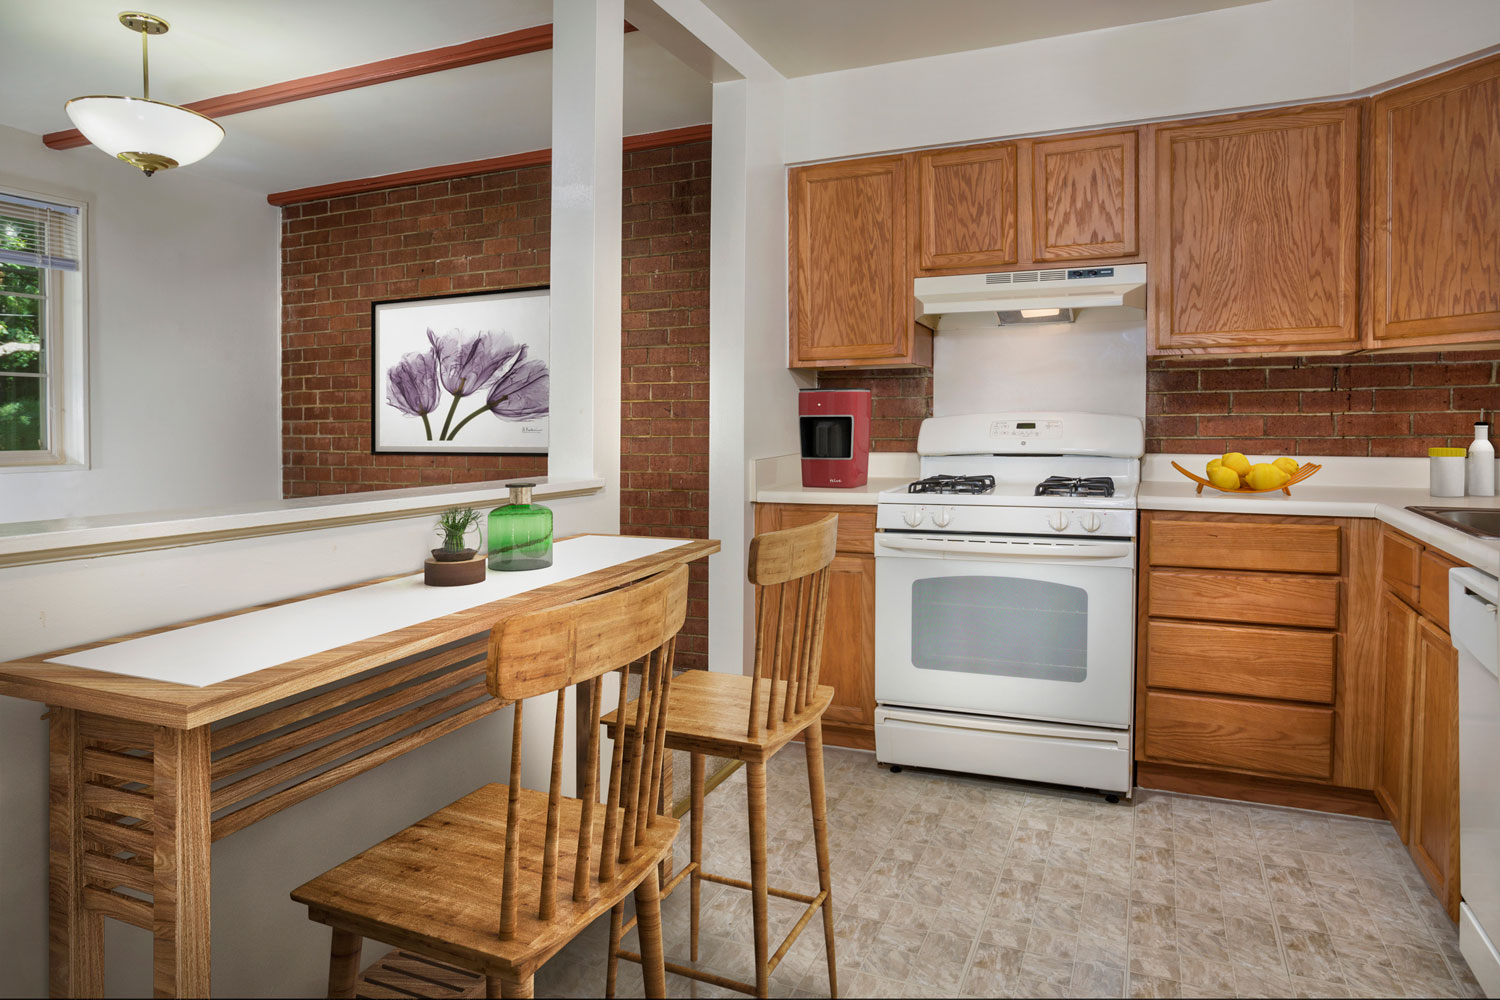 Big kitchen with lots of counter & storage space at Whitehall Square Apartments